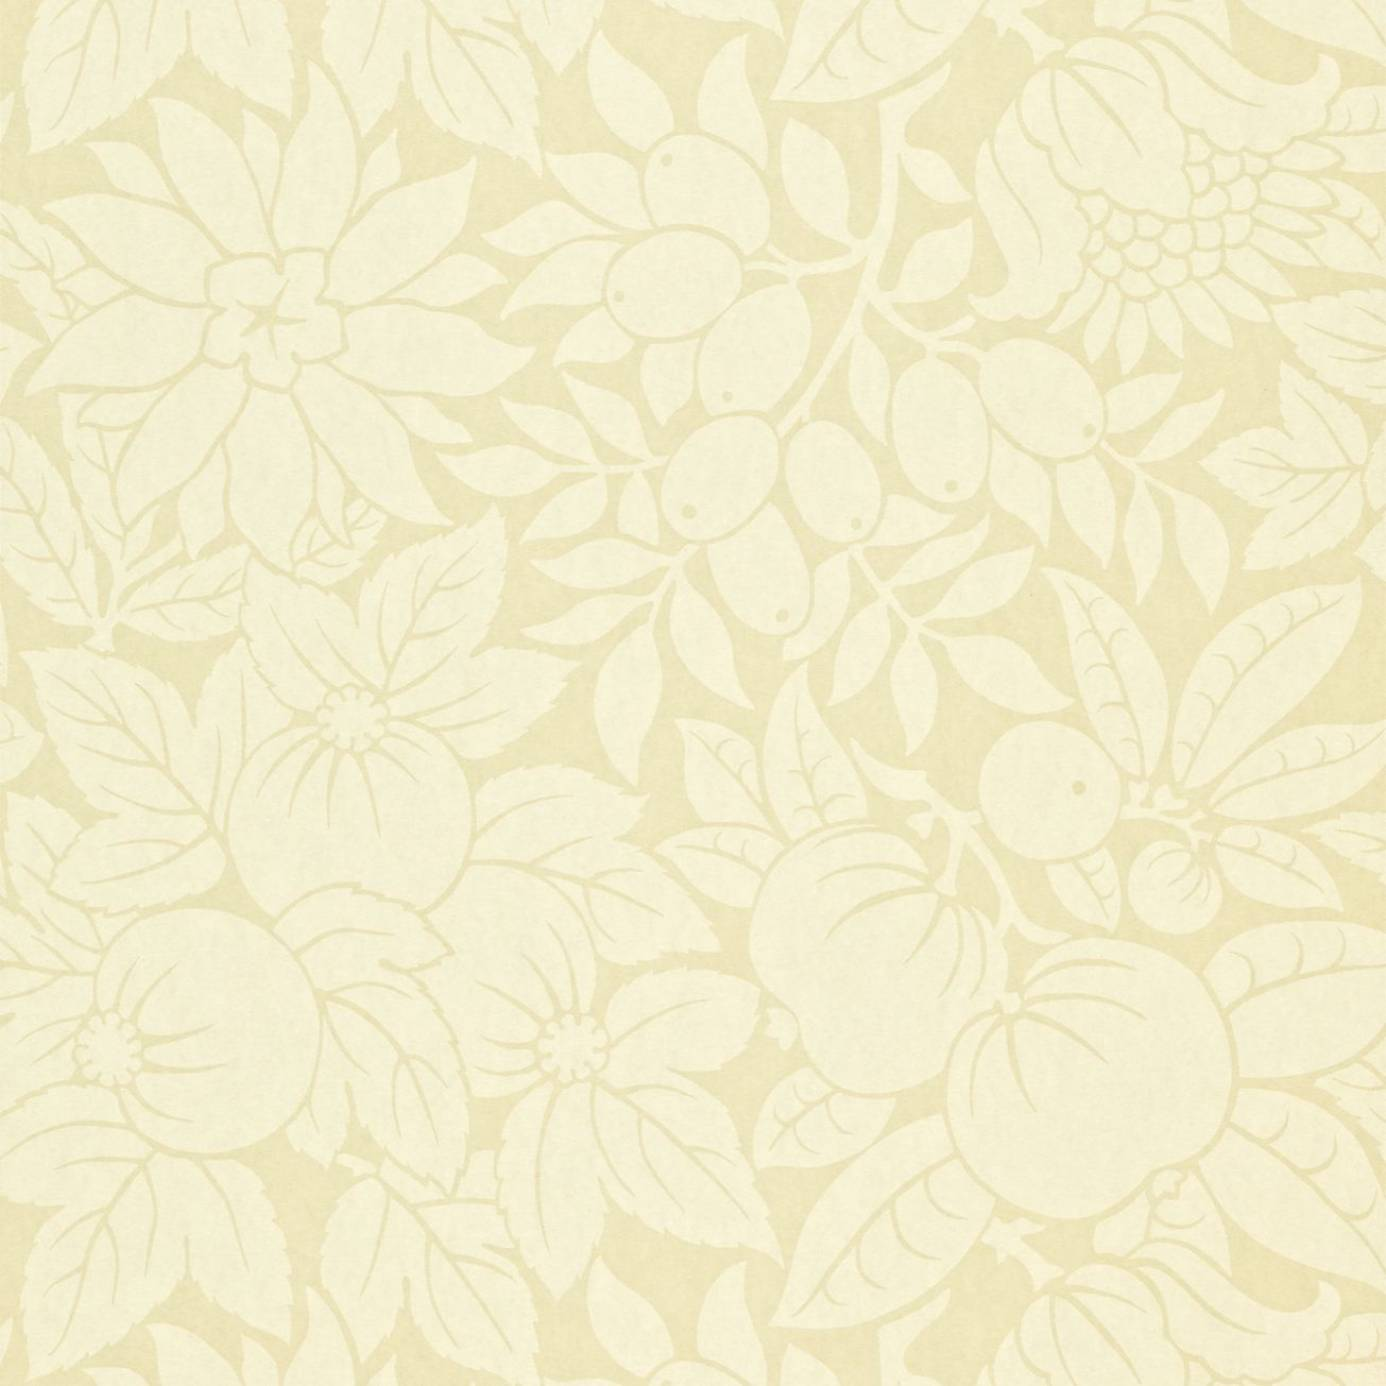 Copacabana wallpaper cream dopwcp103 sanderson for Plain white wallpaper for walls